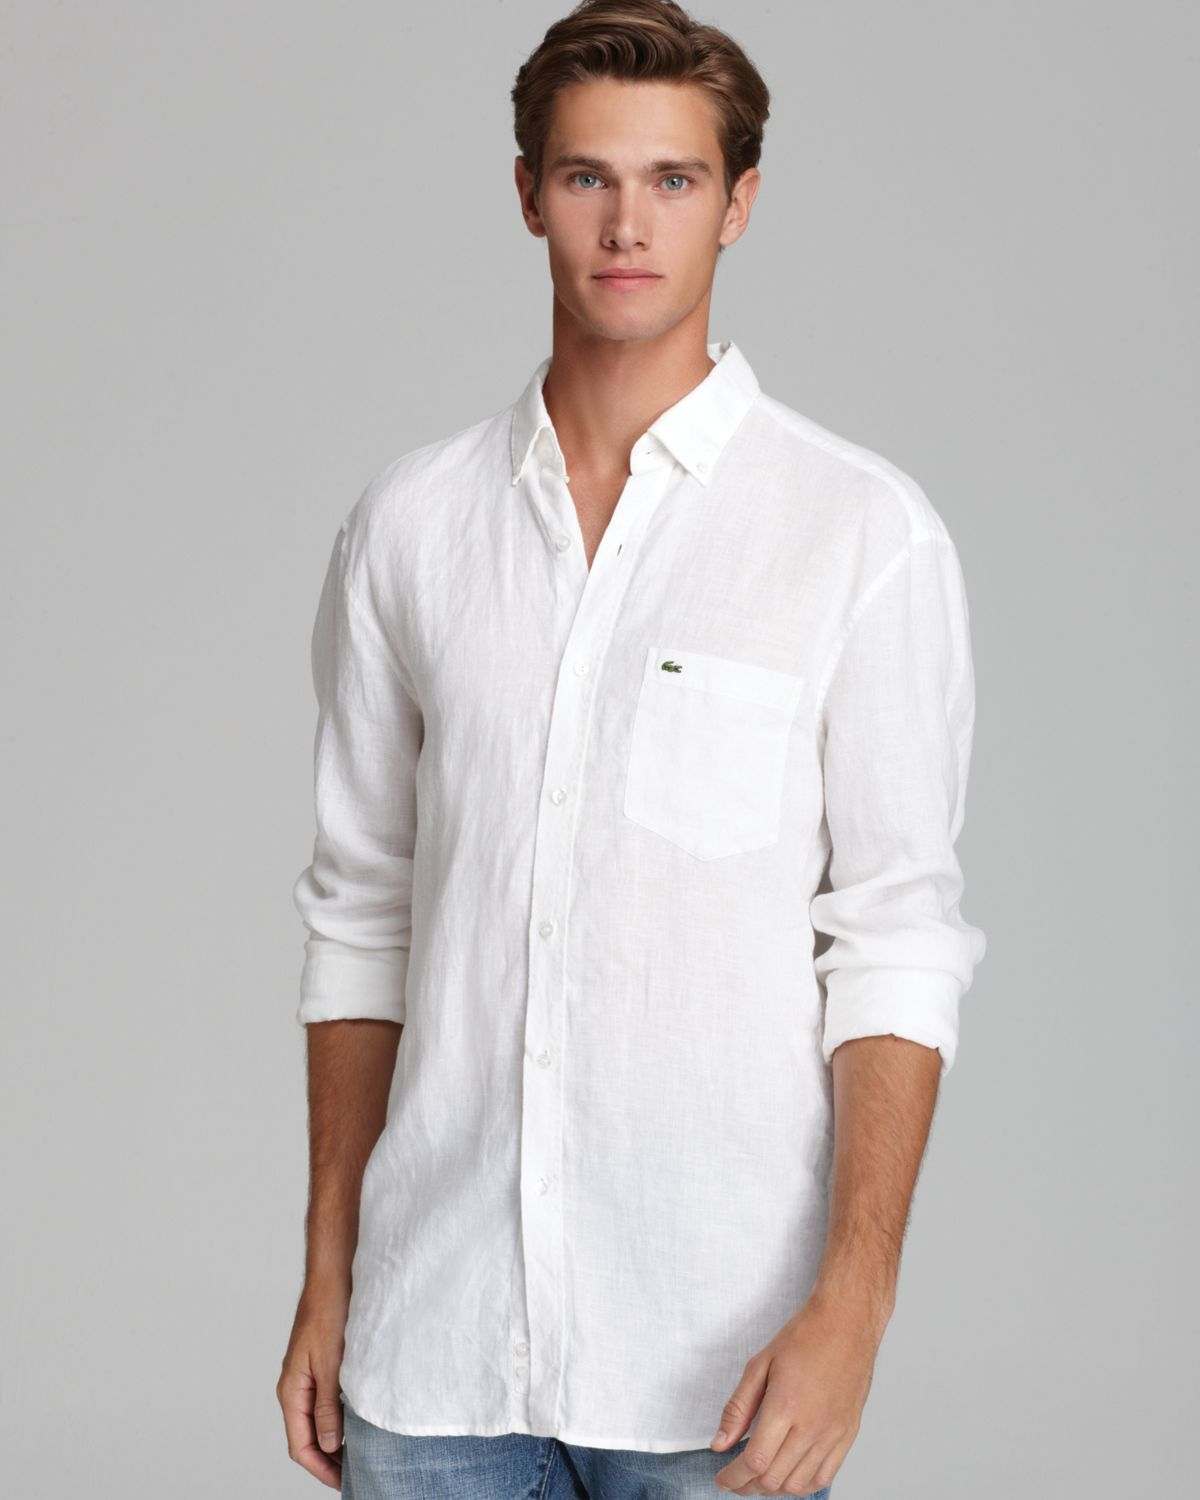 Excellent Lyst - Lacoste Linen Sport Shirt Classic Fit in White for Men BW07